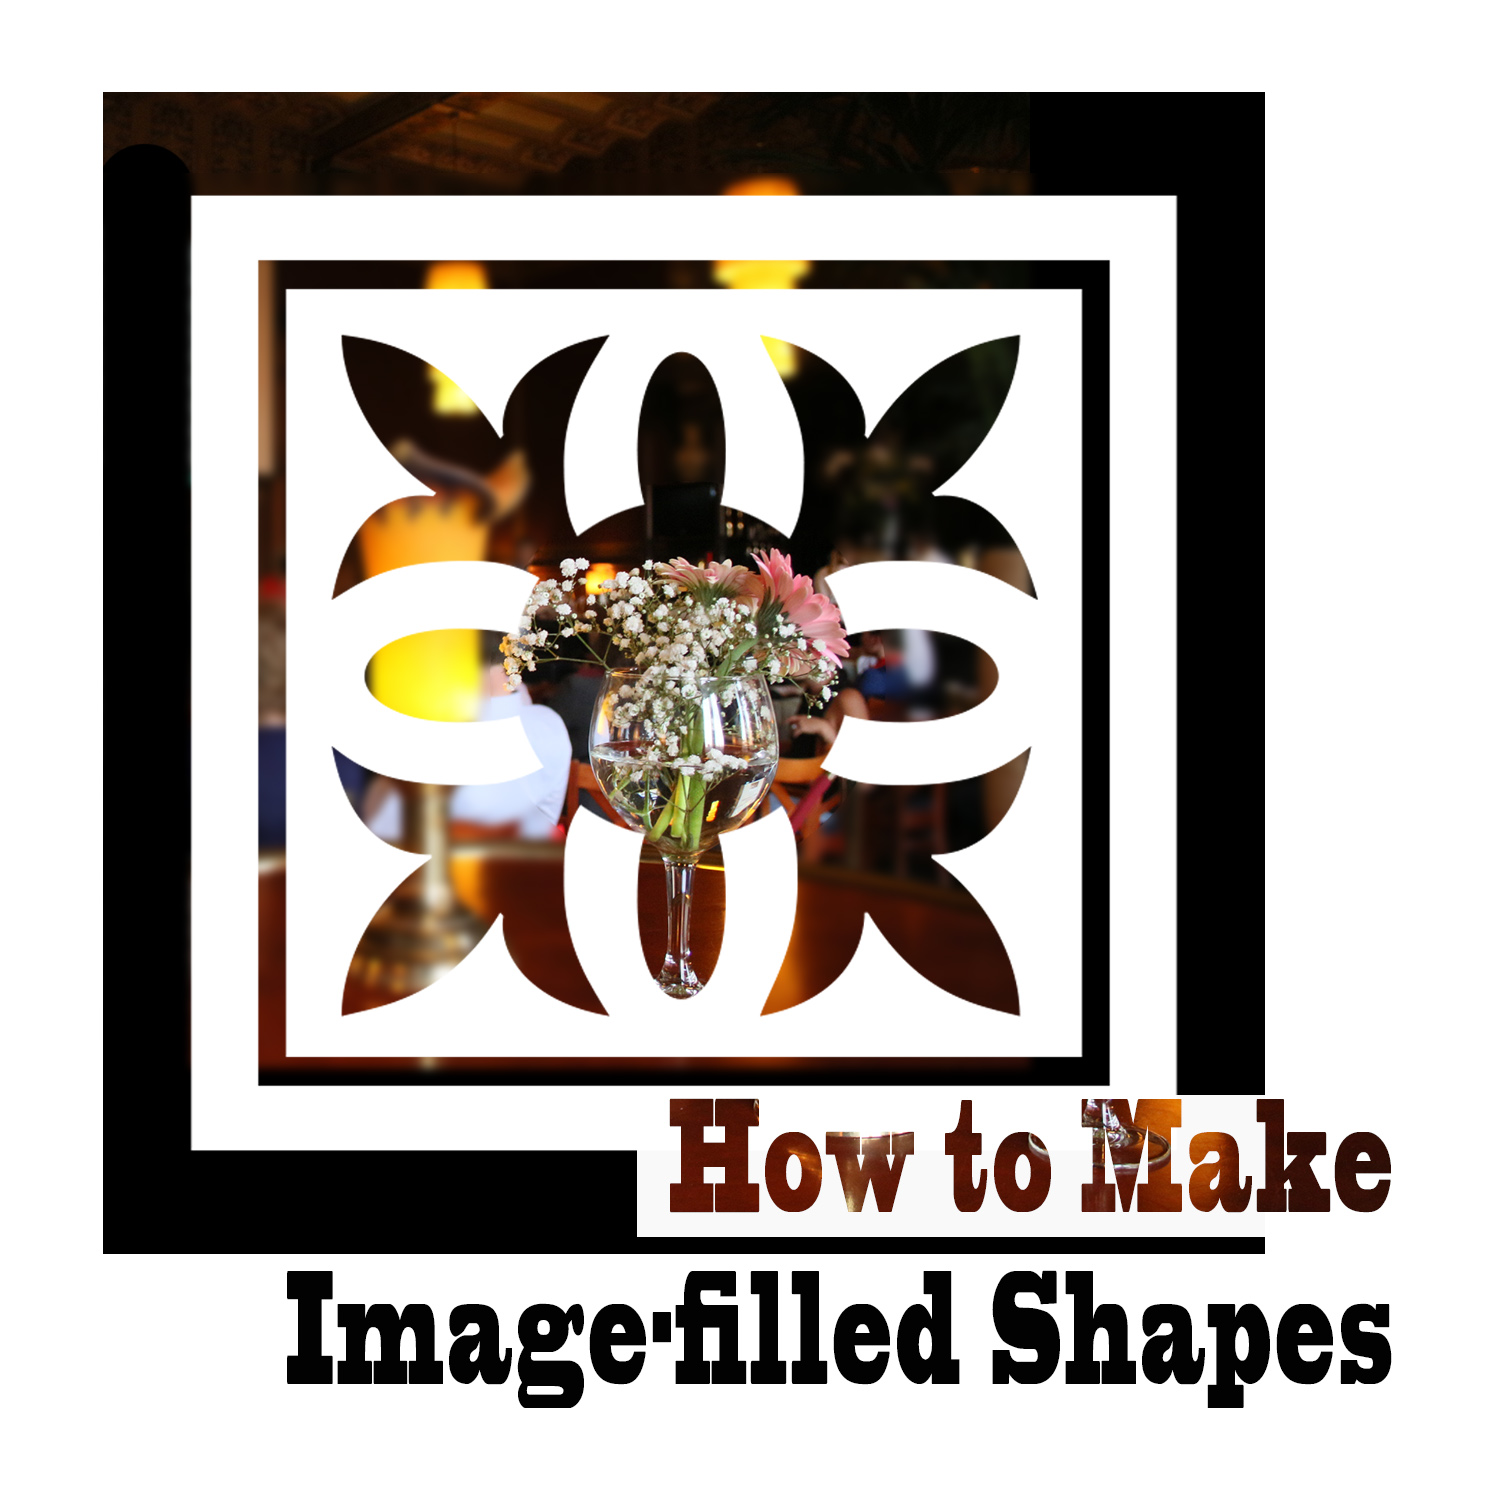 How to Make Image-Filled Shapes in Photoshop